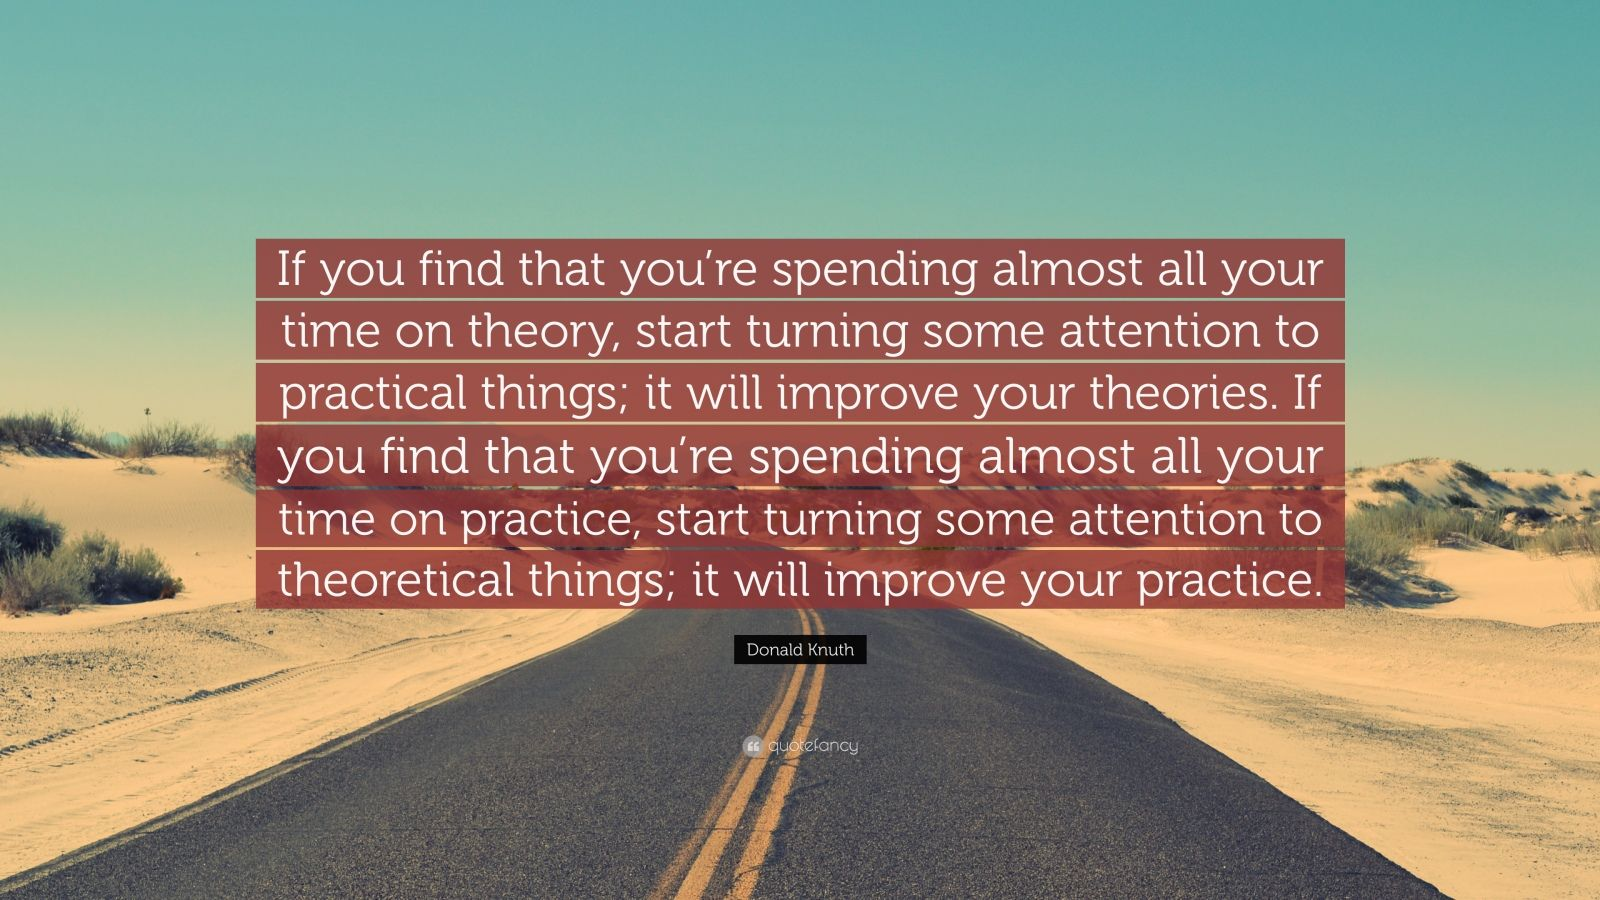 "Donald Knuth Quote: ""If you find that you're spending almost all your time on theory, start turning some attention to practical things; it will improve your theories. If you find that you're spending almost all your time on practice, start turning some attention to theoretical things; it will improve your practice."""